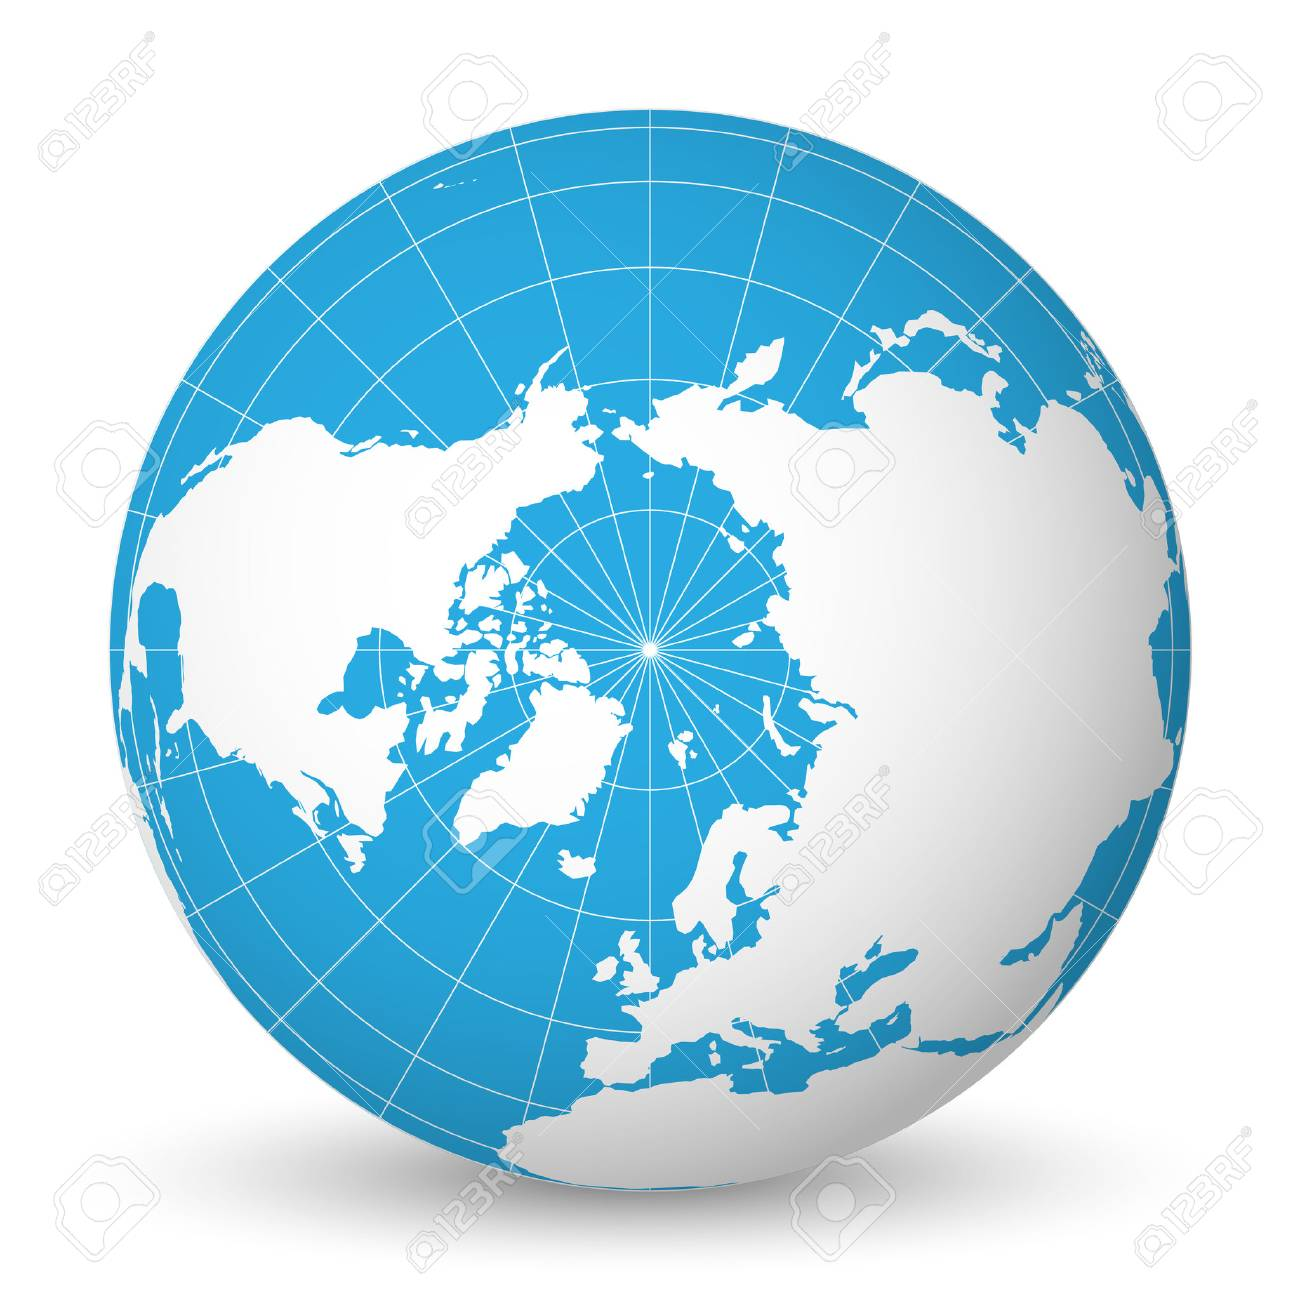 Earth globe with green world map and blue seas and oceans focused on Arctic Ocean and North Pole. With thin white meridians and parallels. 3D vector illustration. - 94131768